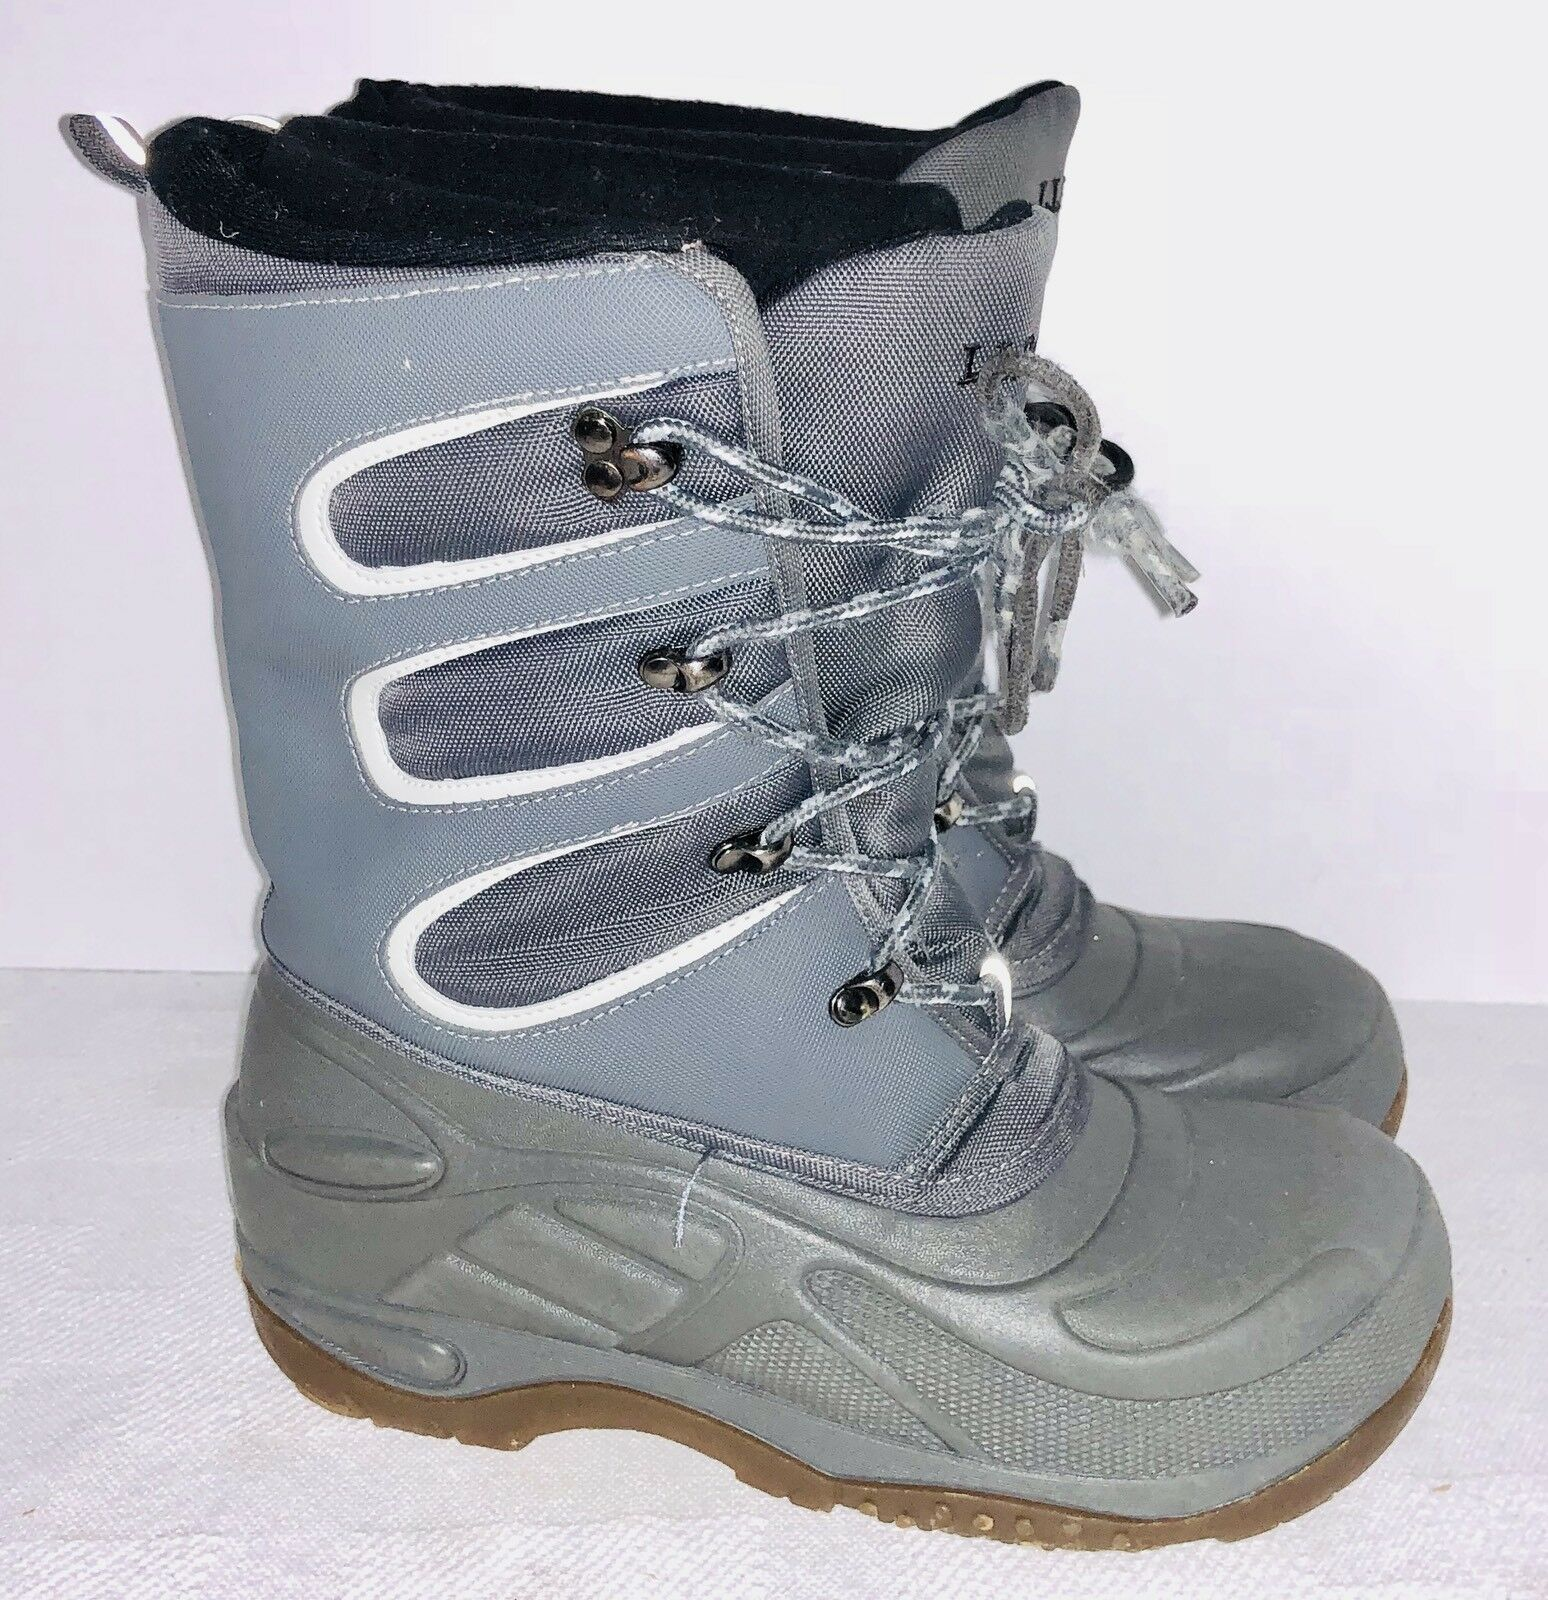 LL Bean womens Size 6 lined waterproof rain snow boots bluee Insulated